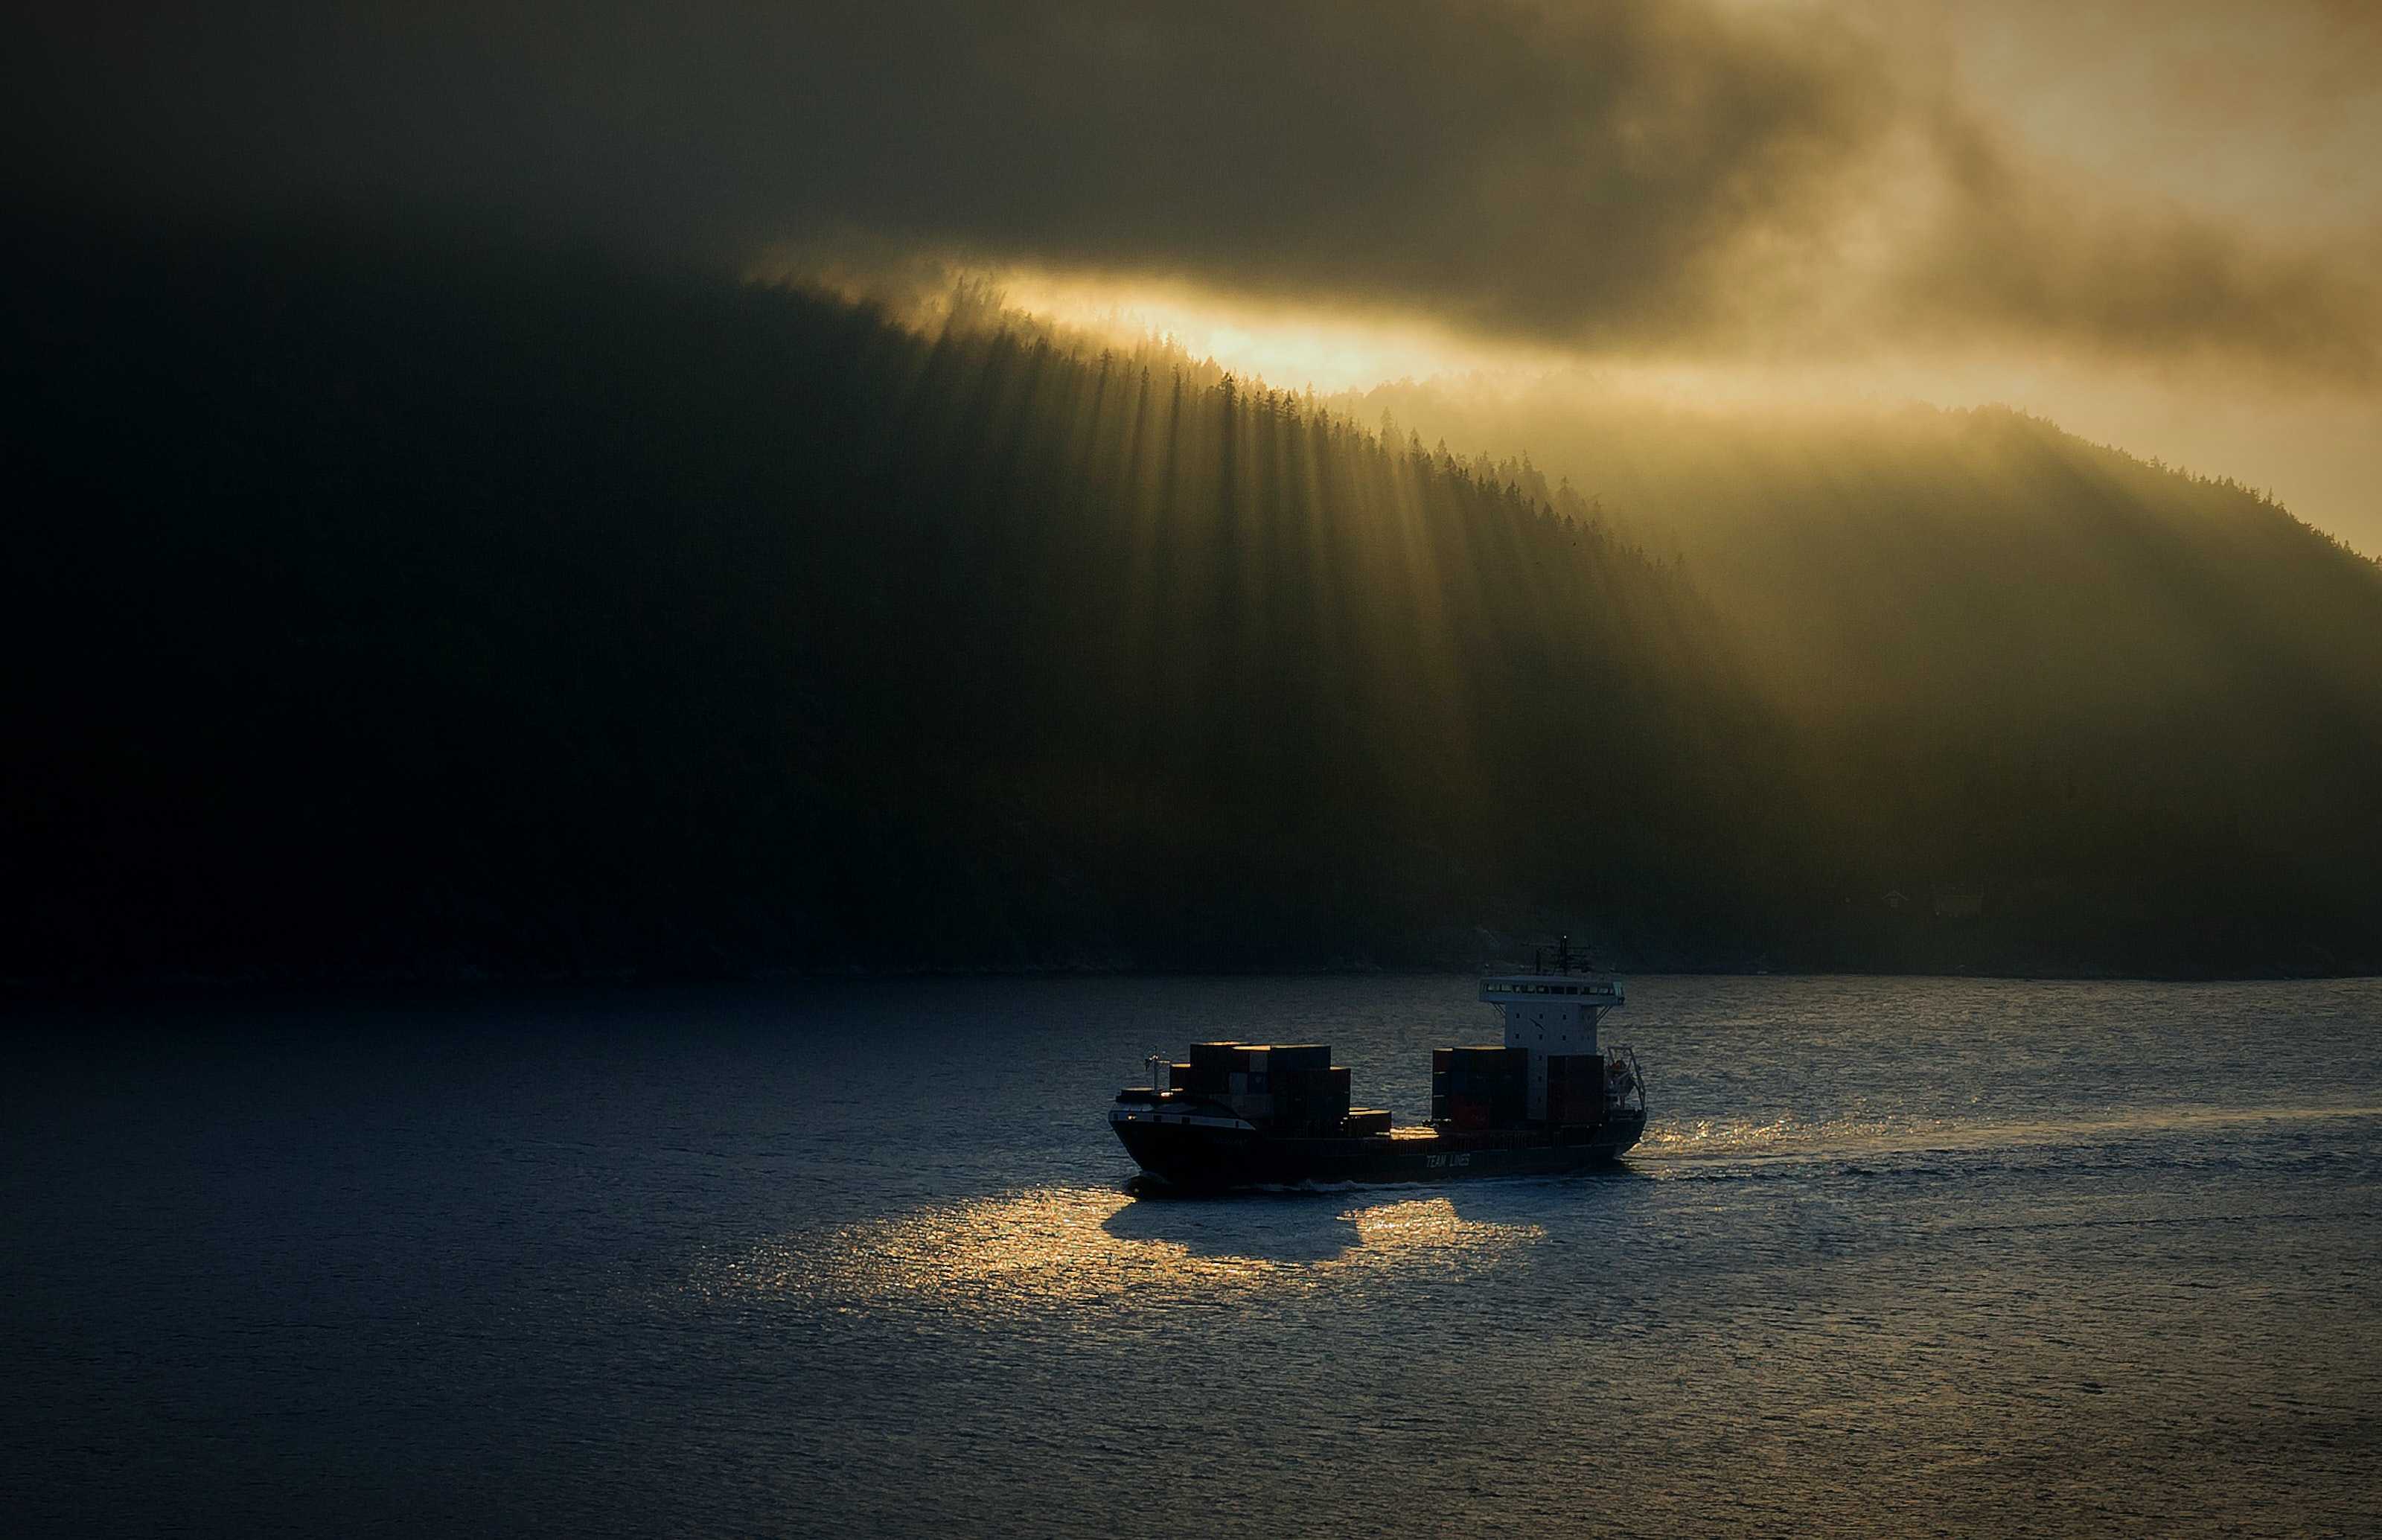 two ships on body of water under cloudy skies during golden hour